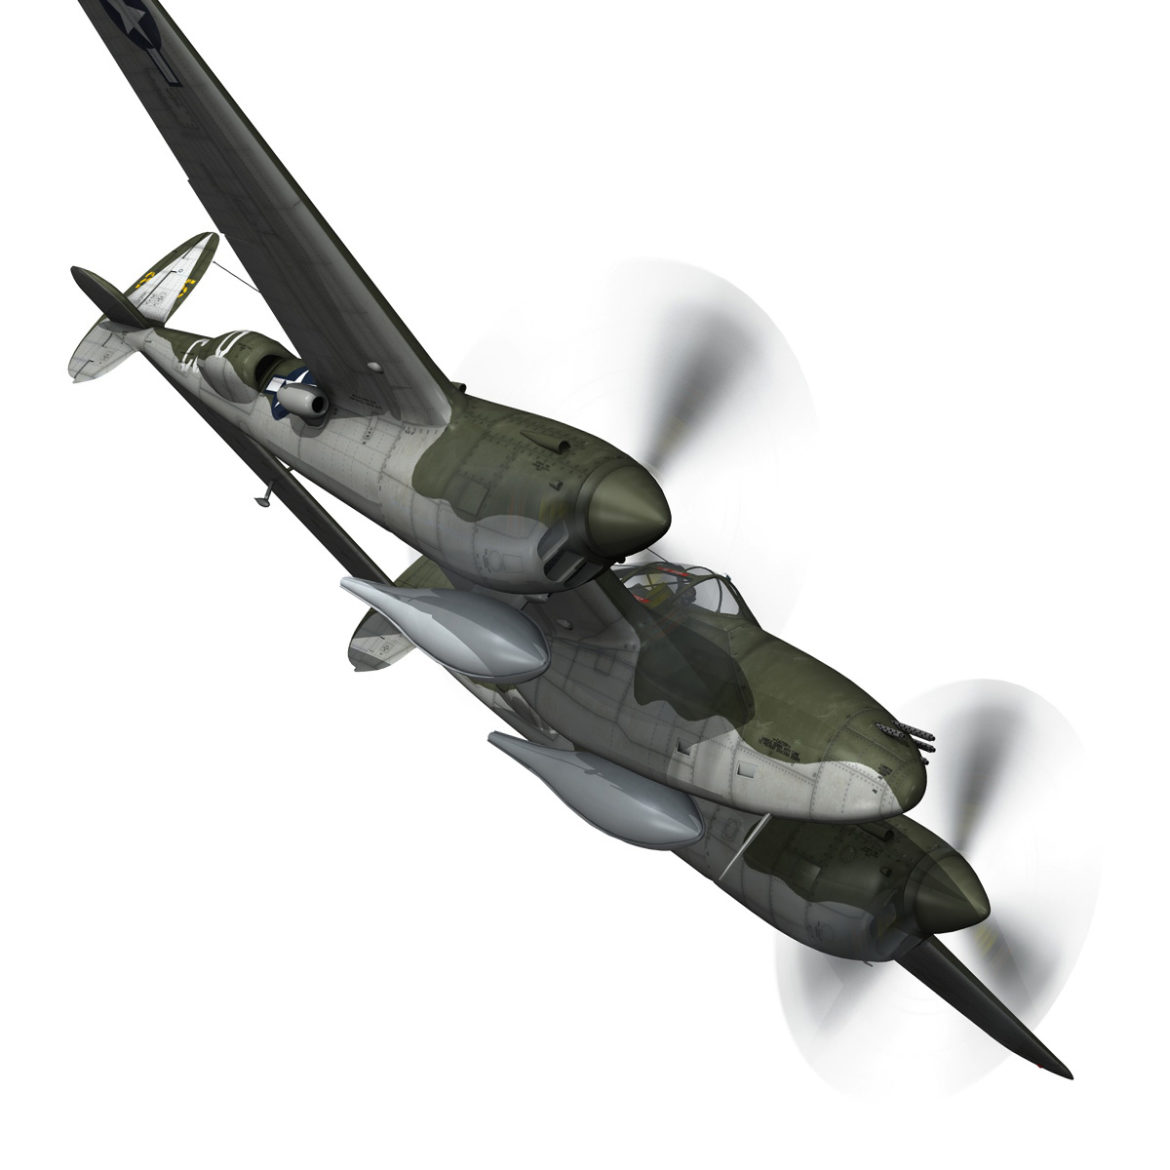 lockheed p-38 lightning – journeys end 3d model fbx lwo lw lws obj c4d 304434